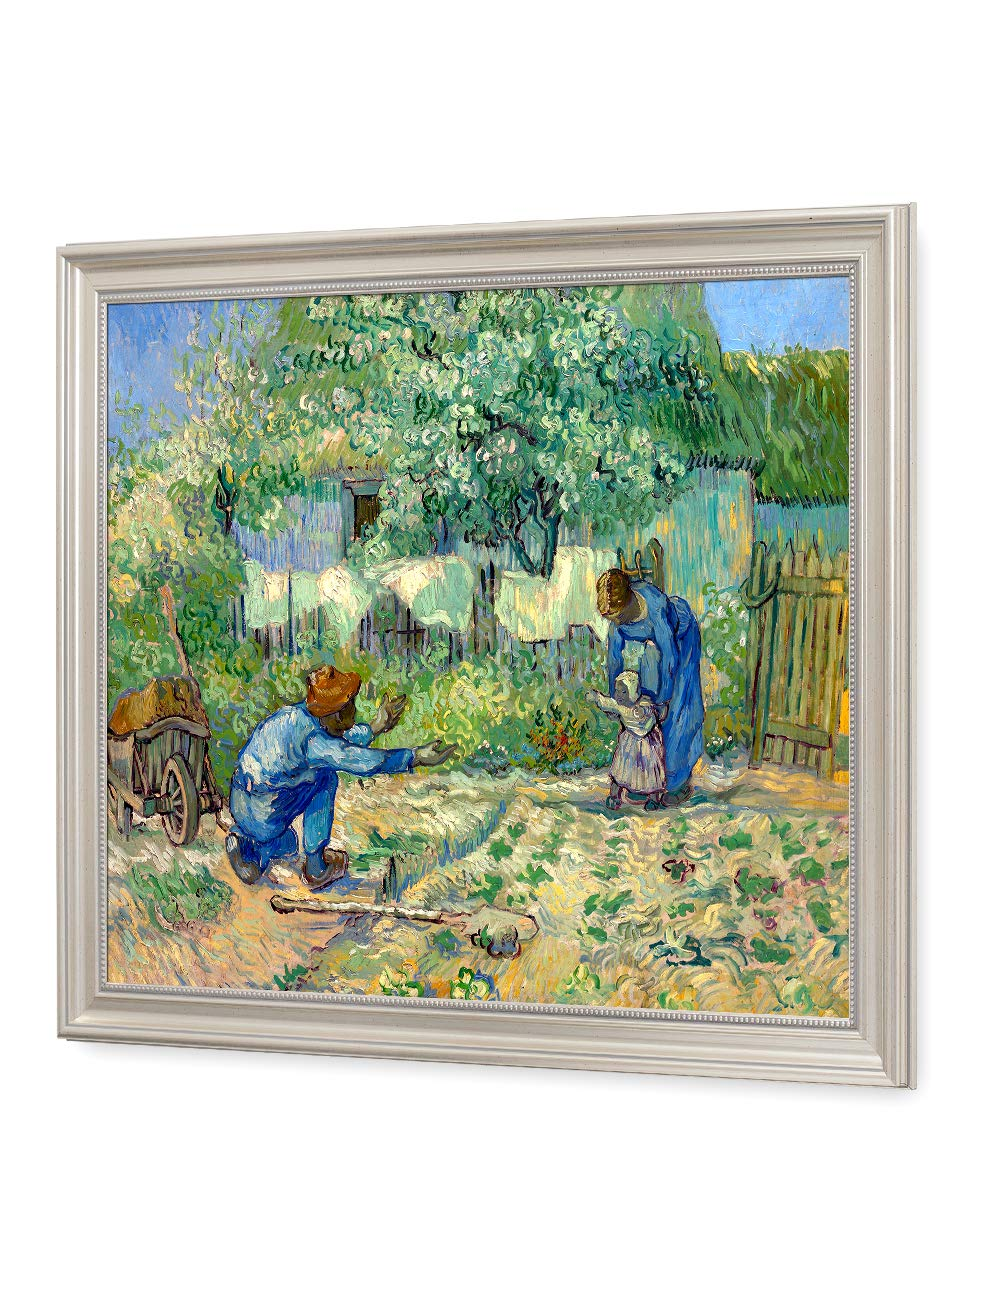 DECORARTS - First Steps, After Millet. Vincent Van Gogh Reproductions. Giclee Print for Wall Decor. Pic Size: 16x20 Framed Size: 19x23